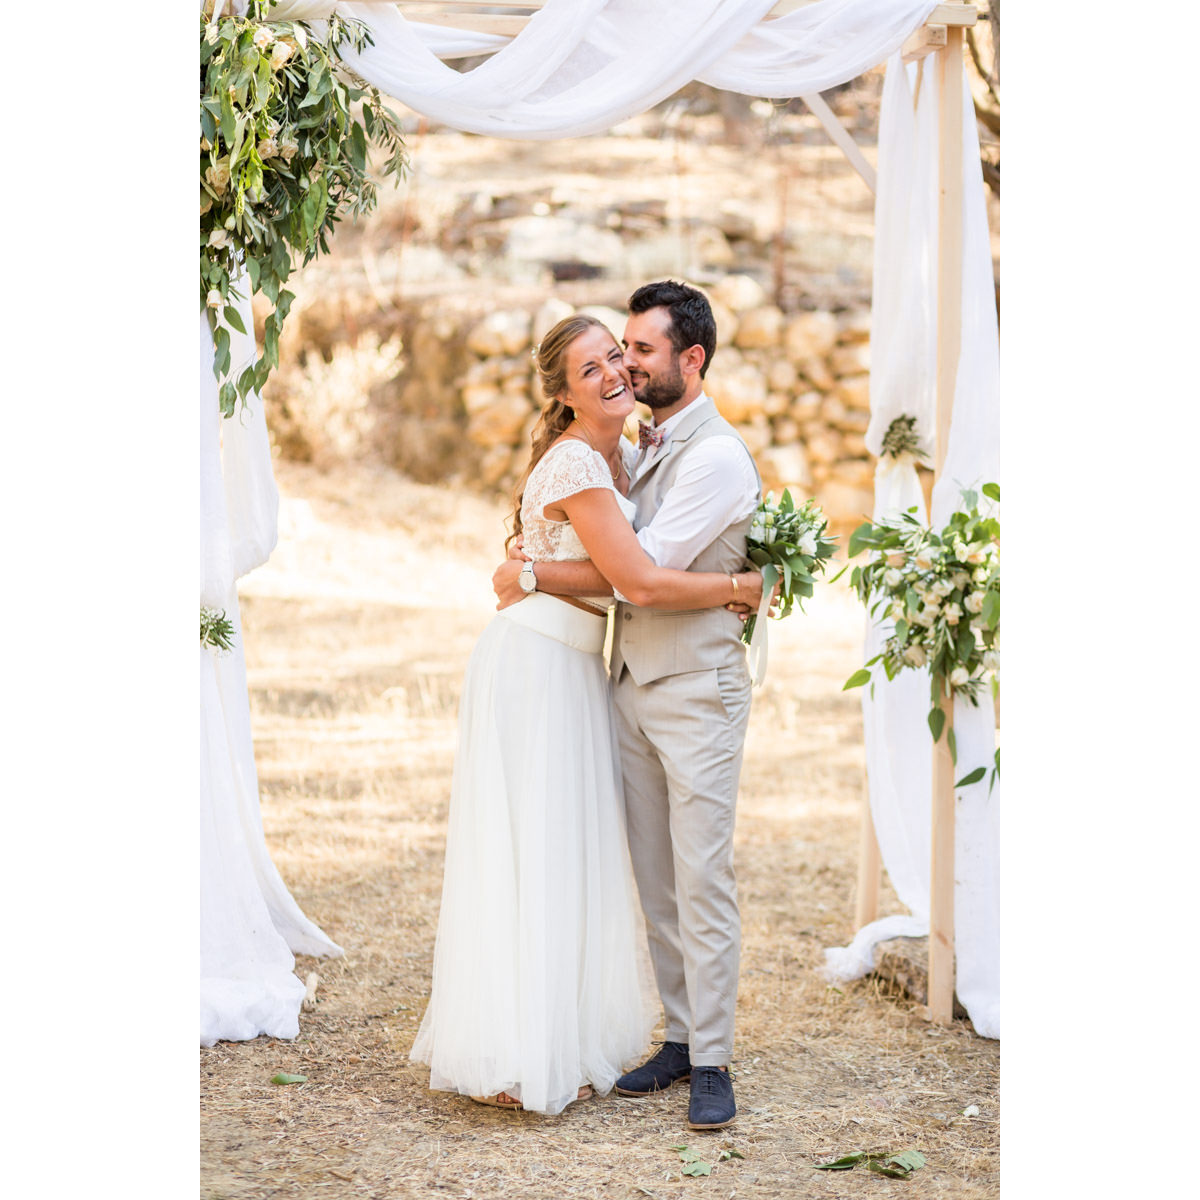 wedding photo under the arch in Crete